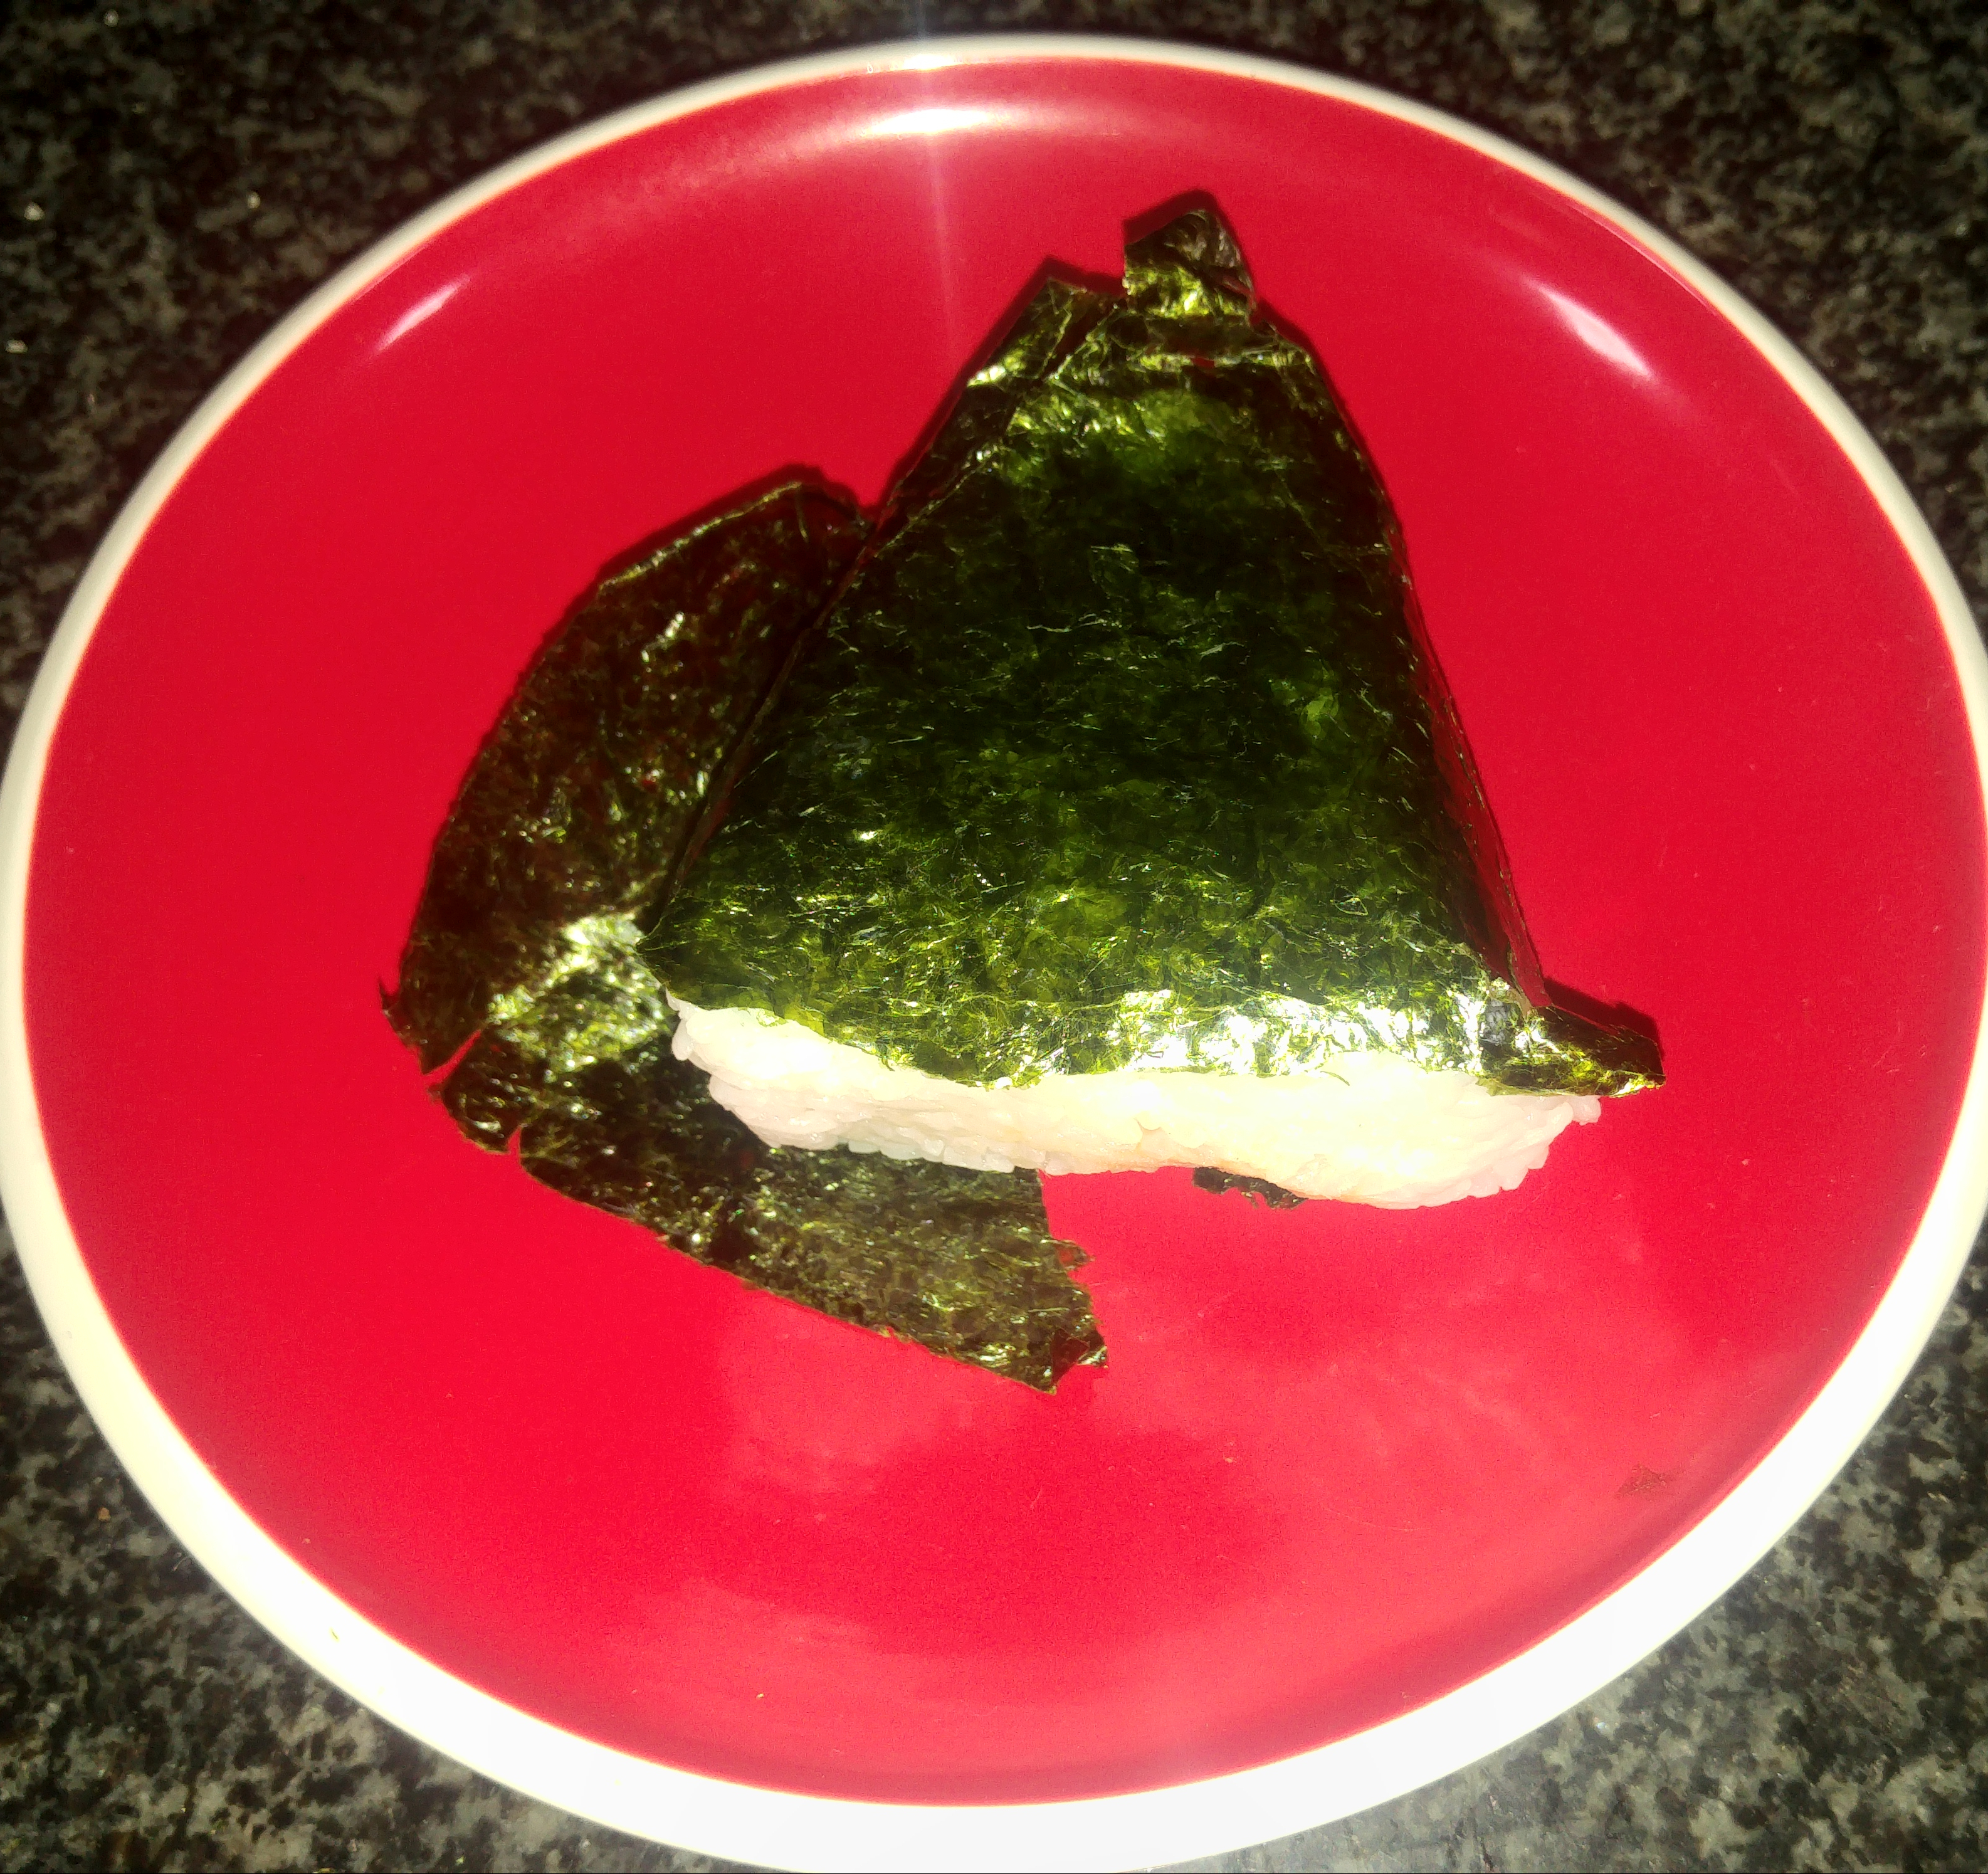 The perfect Japanese snack, onigiri or rice balls